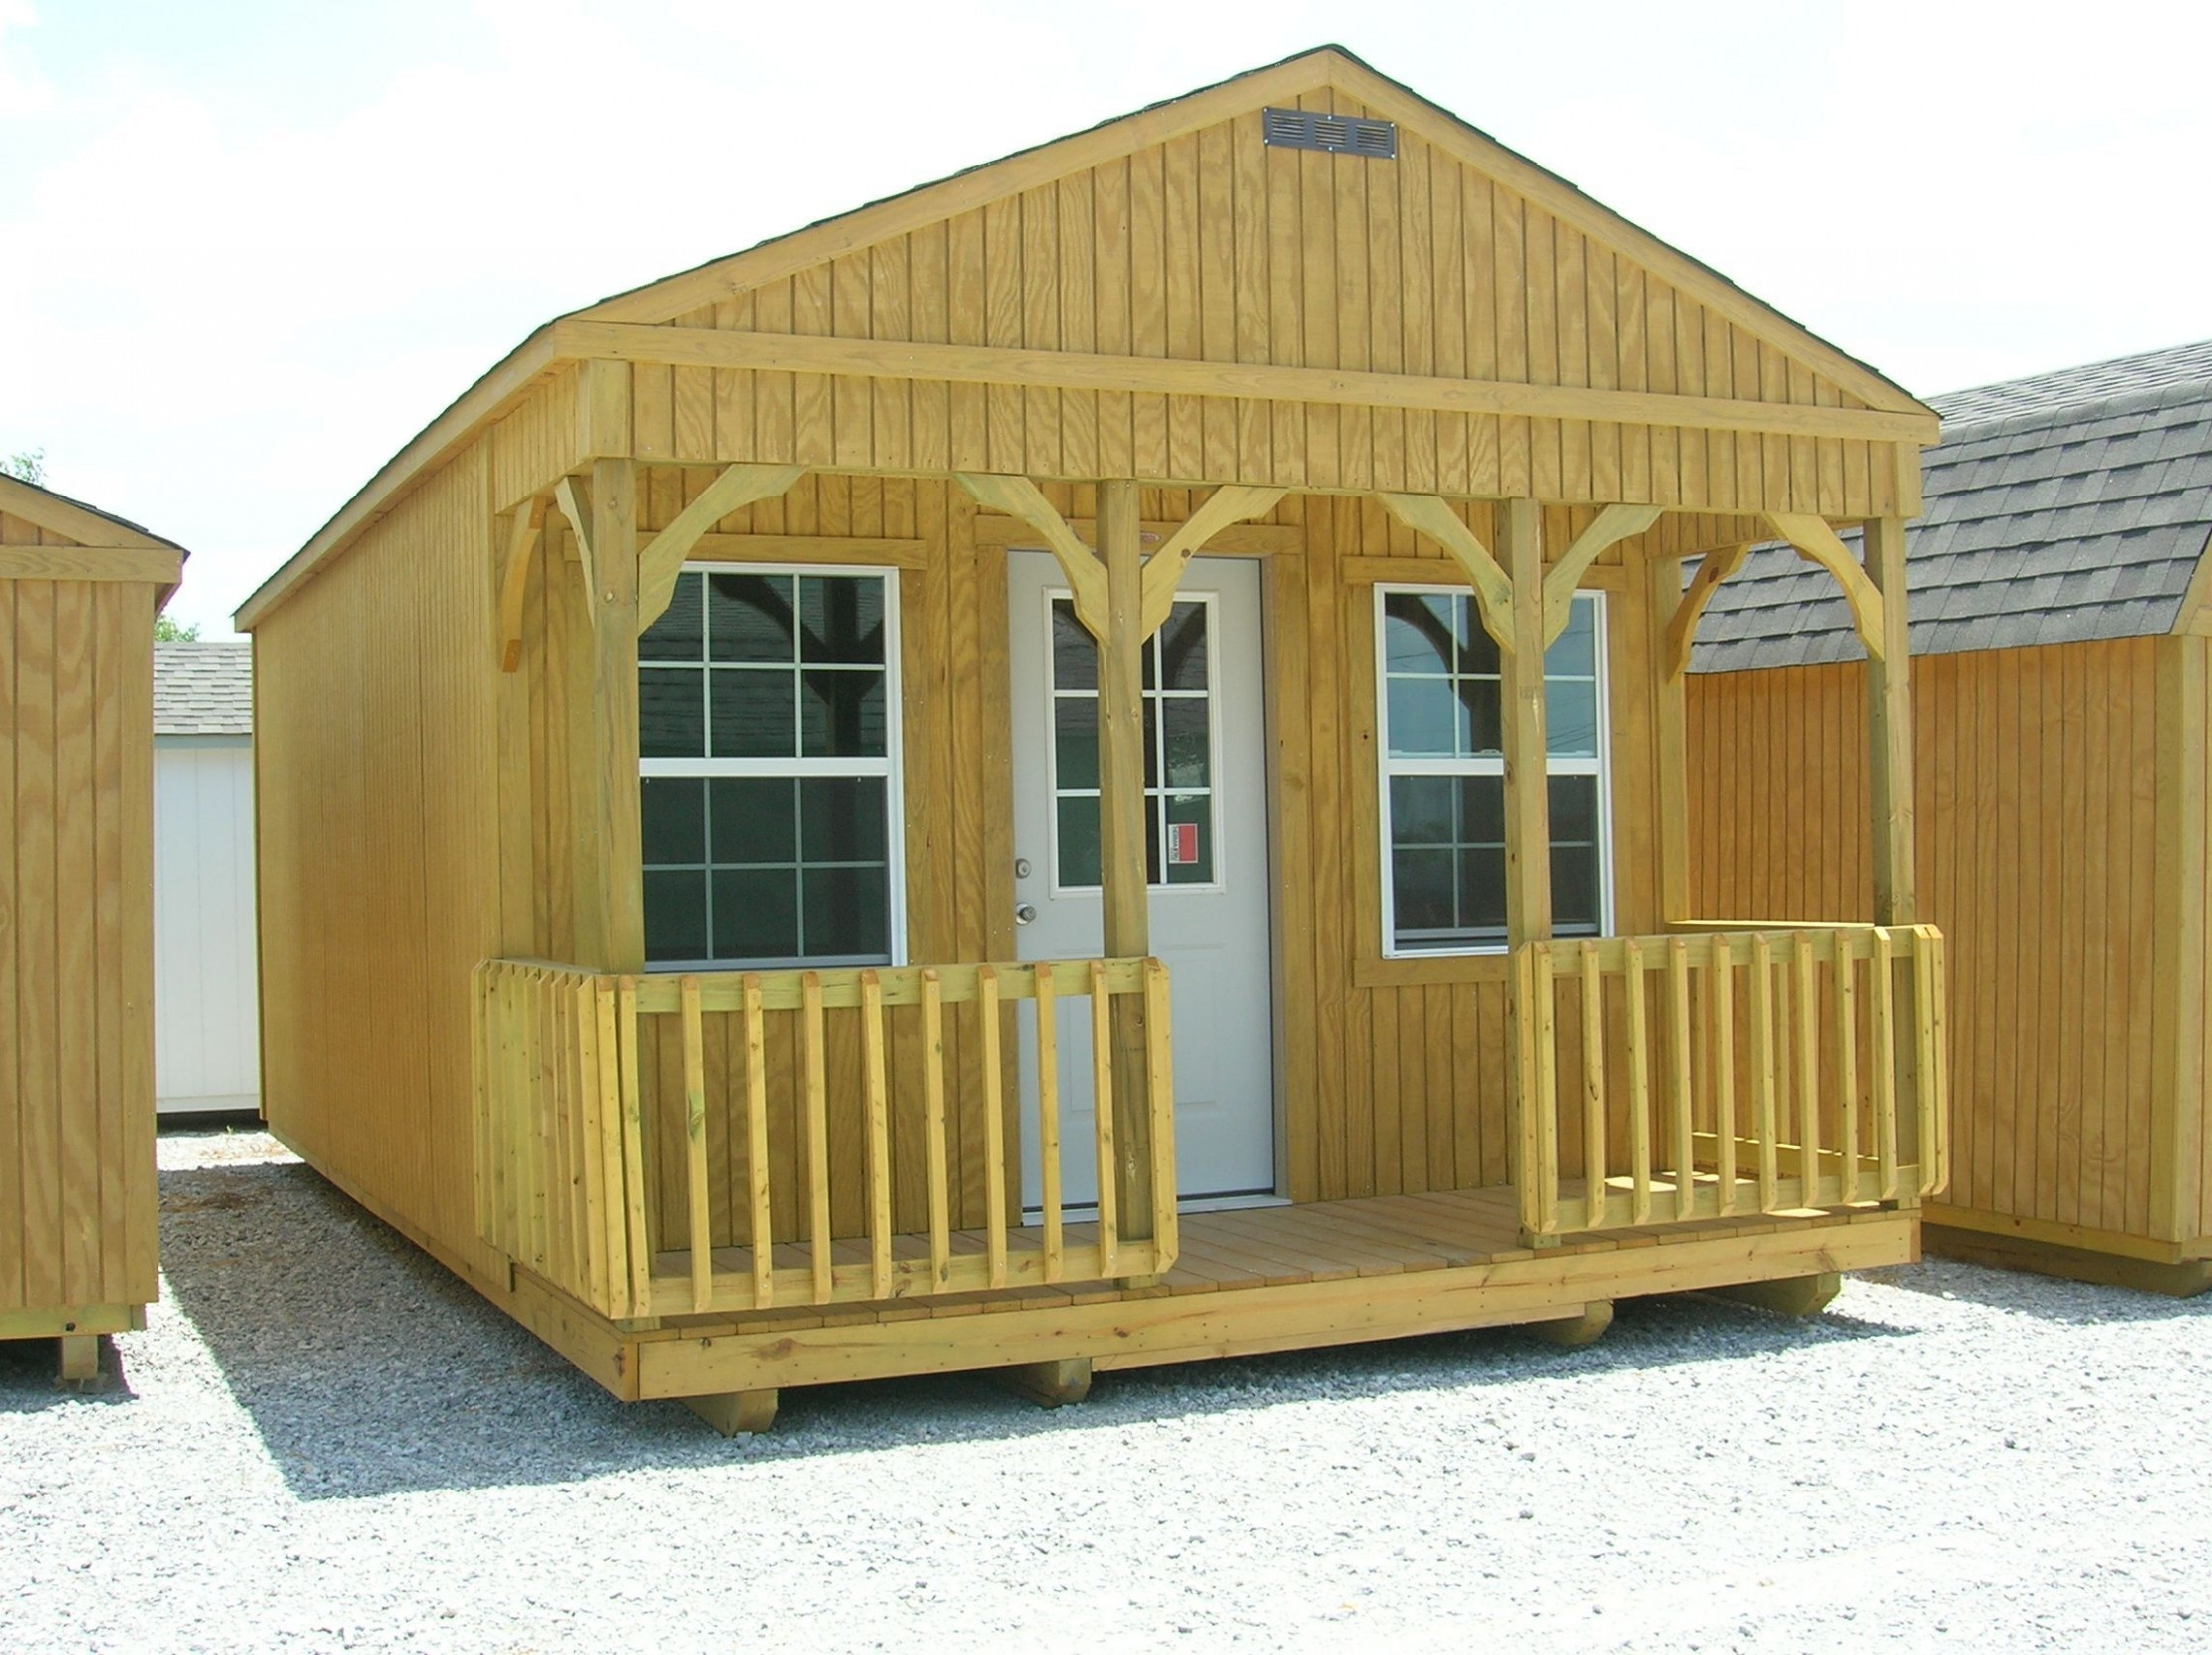 Portable Buildings Carports - Carport Ideas : Carport Ideas